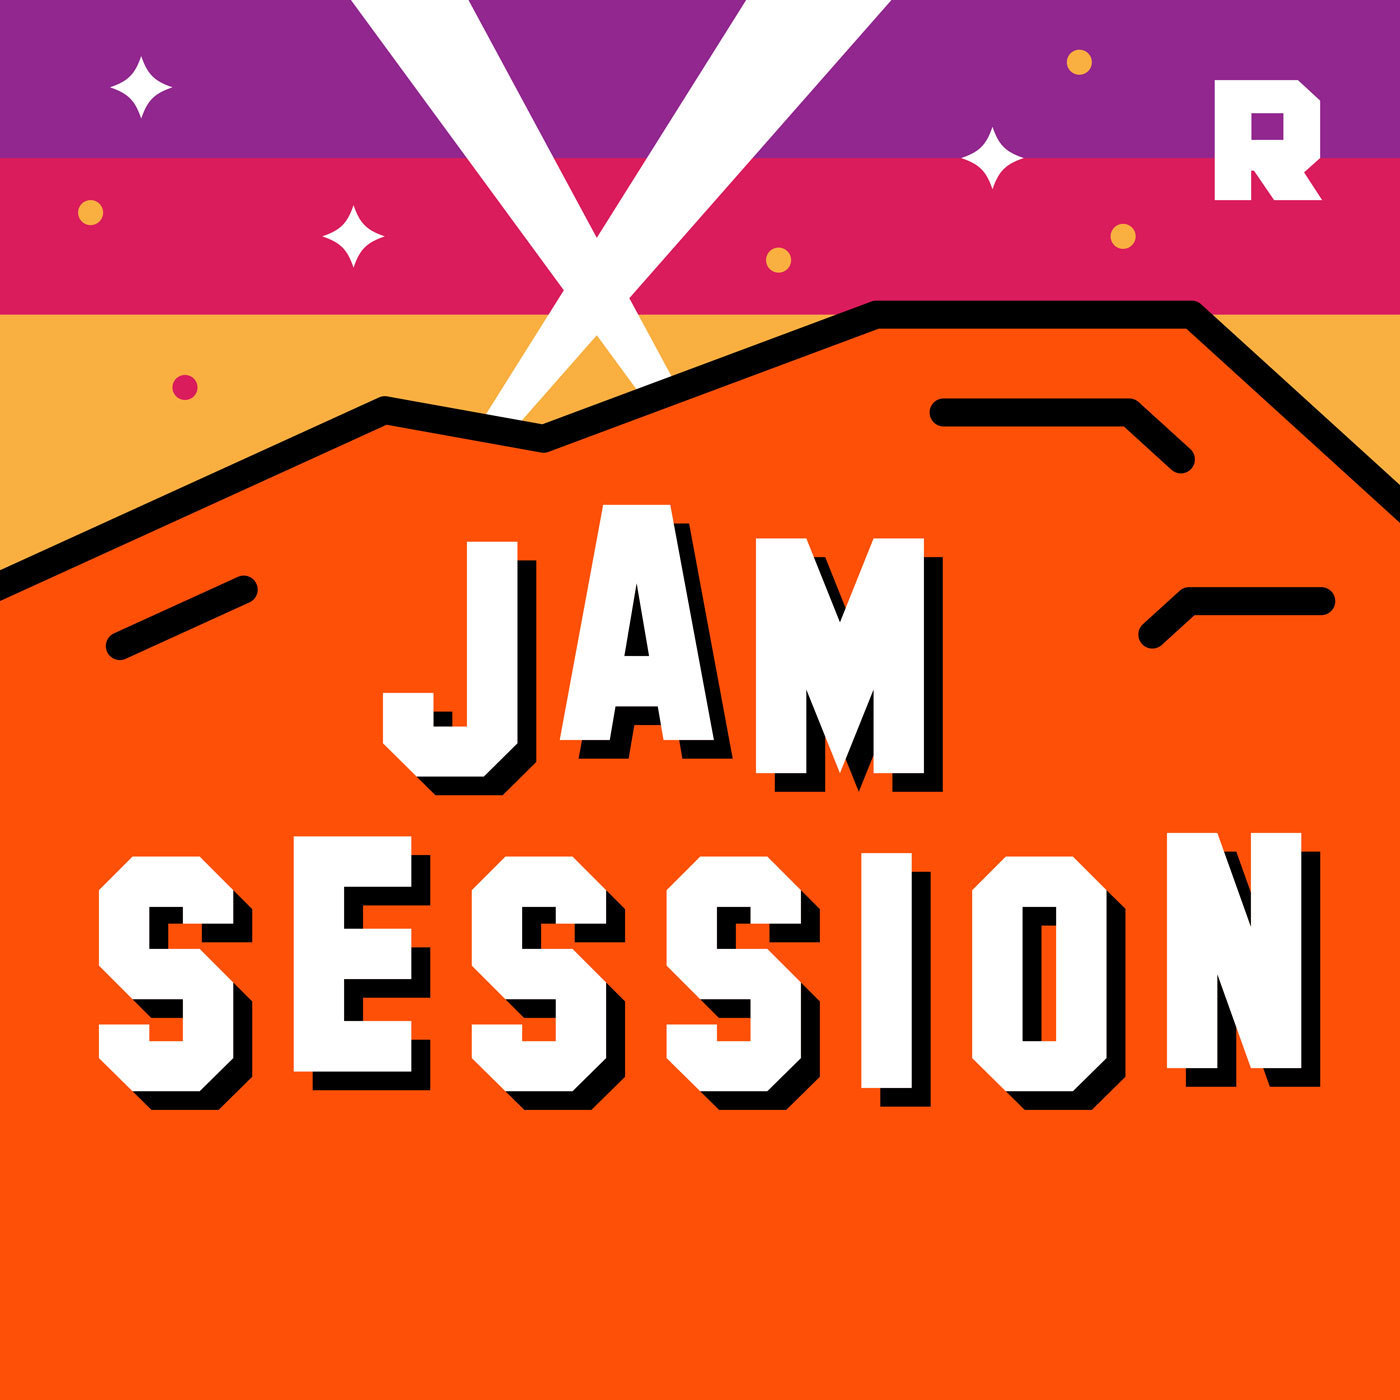 A Star Is Bradley | Jam Session (Ep. 534)